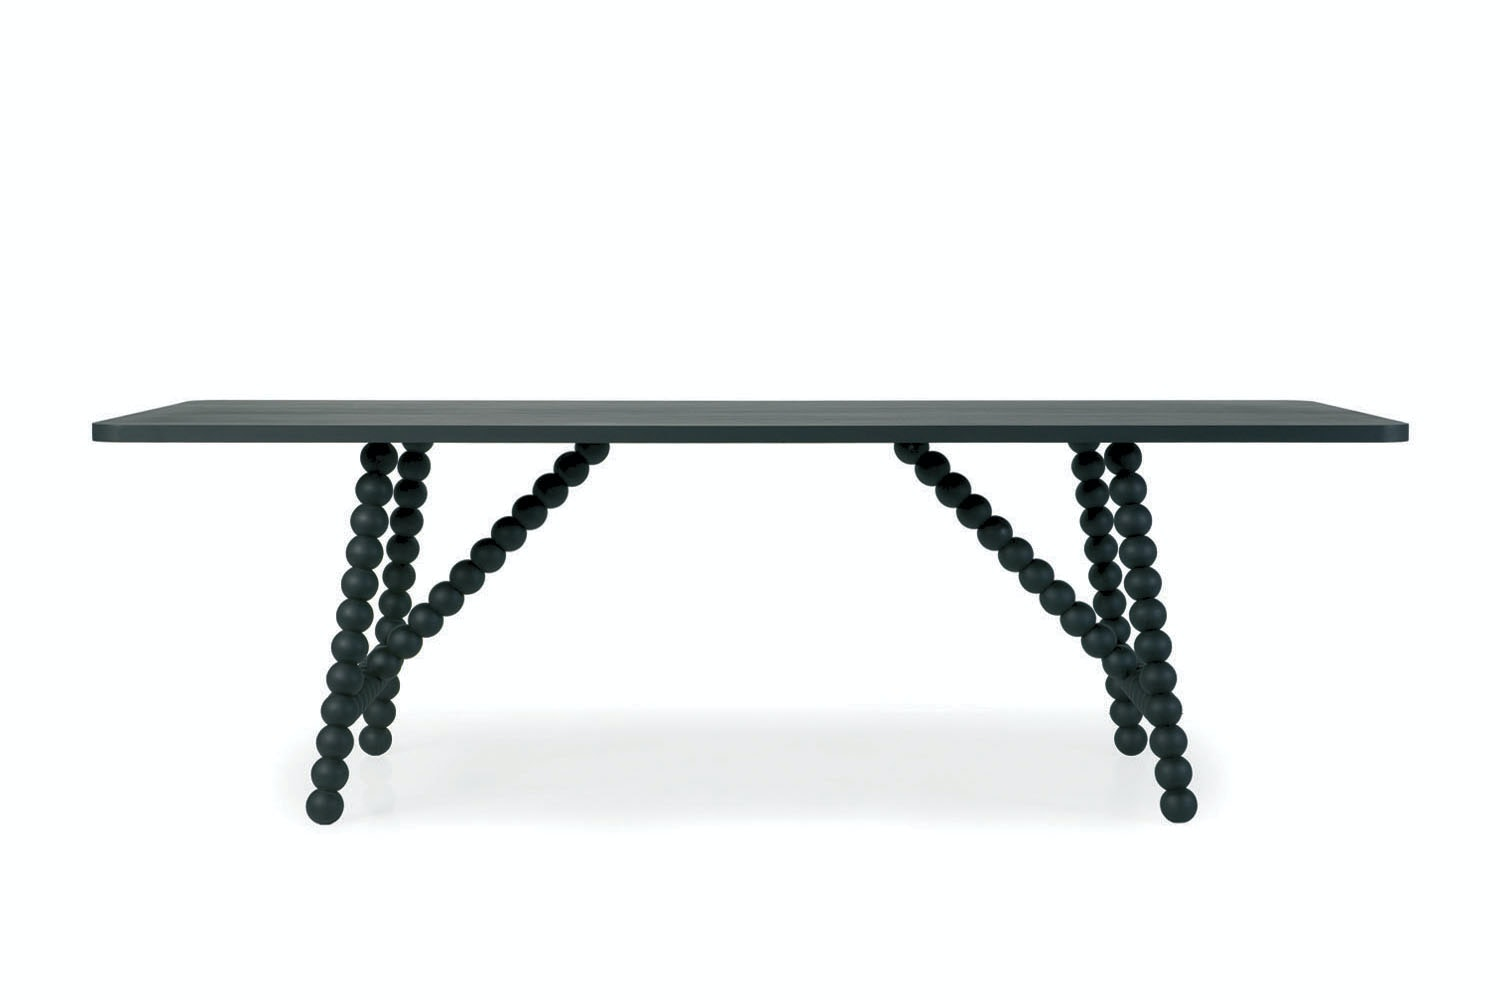 Balls Table by Bertjan Pot for Moooi